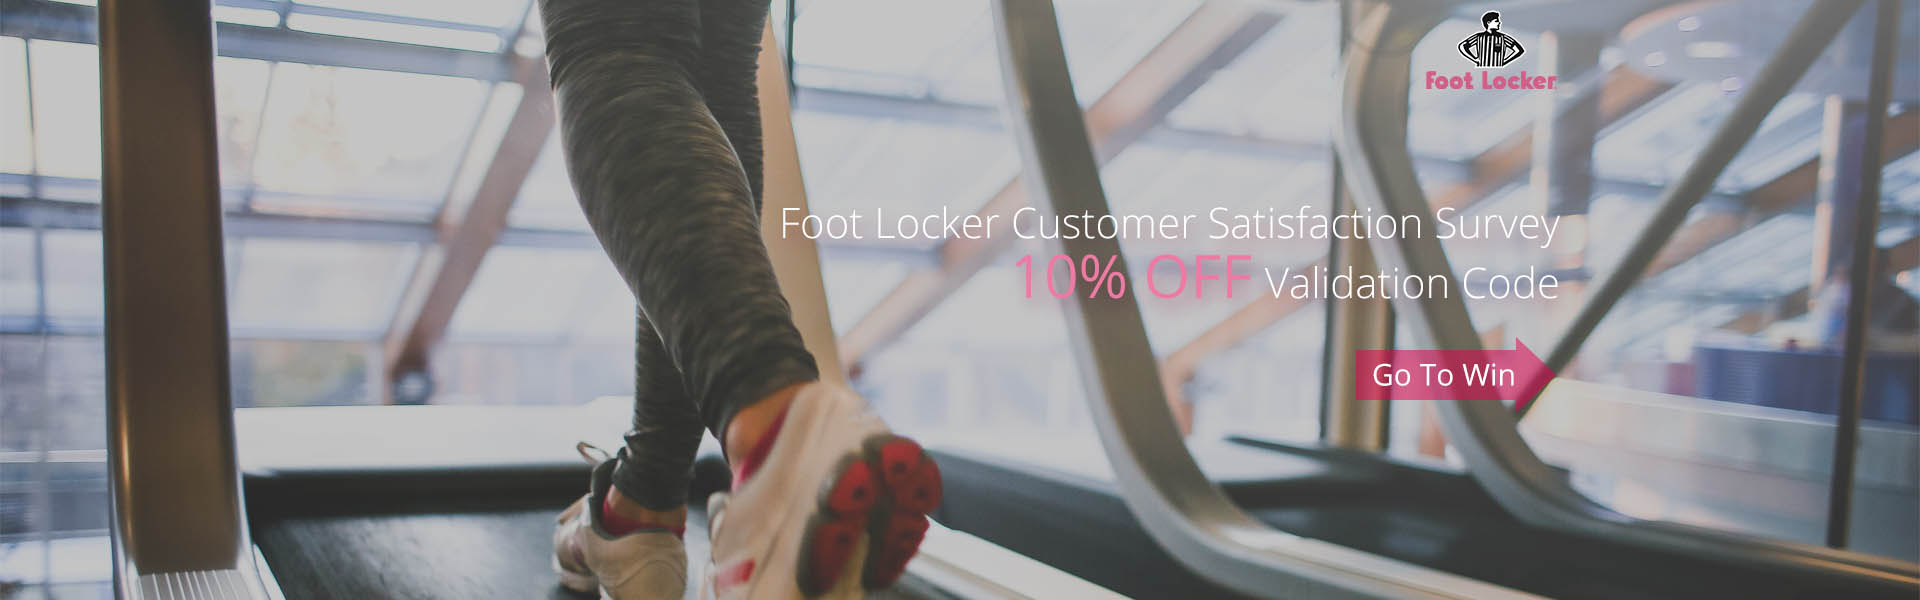 www.footlockersurvey.eu - Foot Locker Customer Satisfaction Survey 10% Off Validation Code